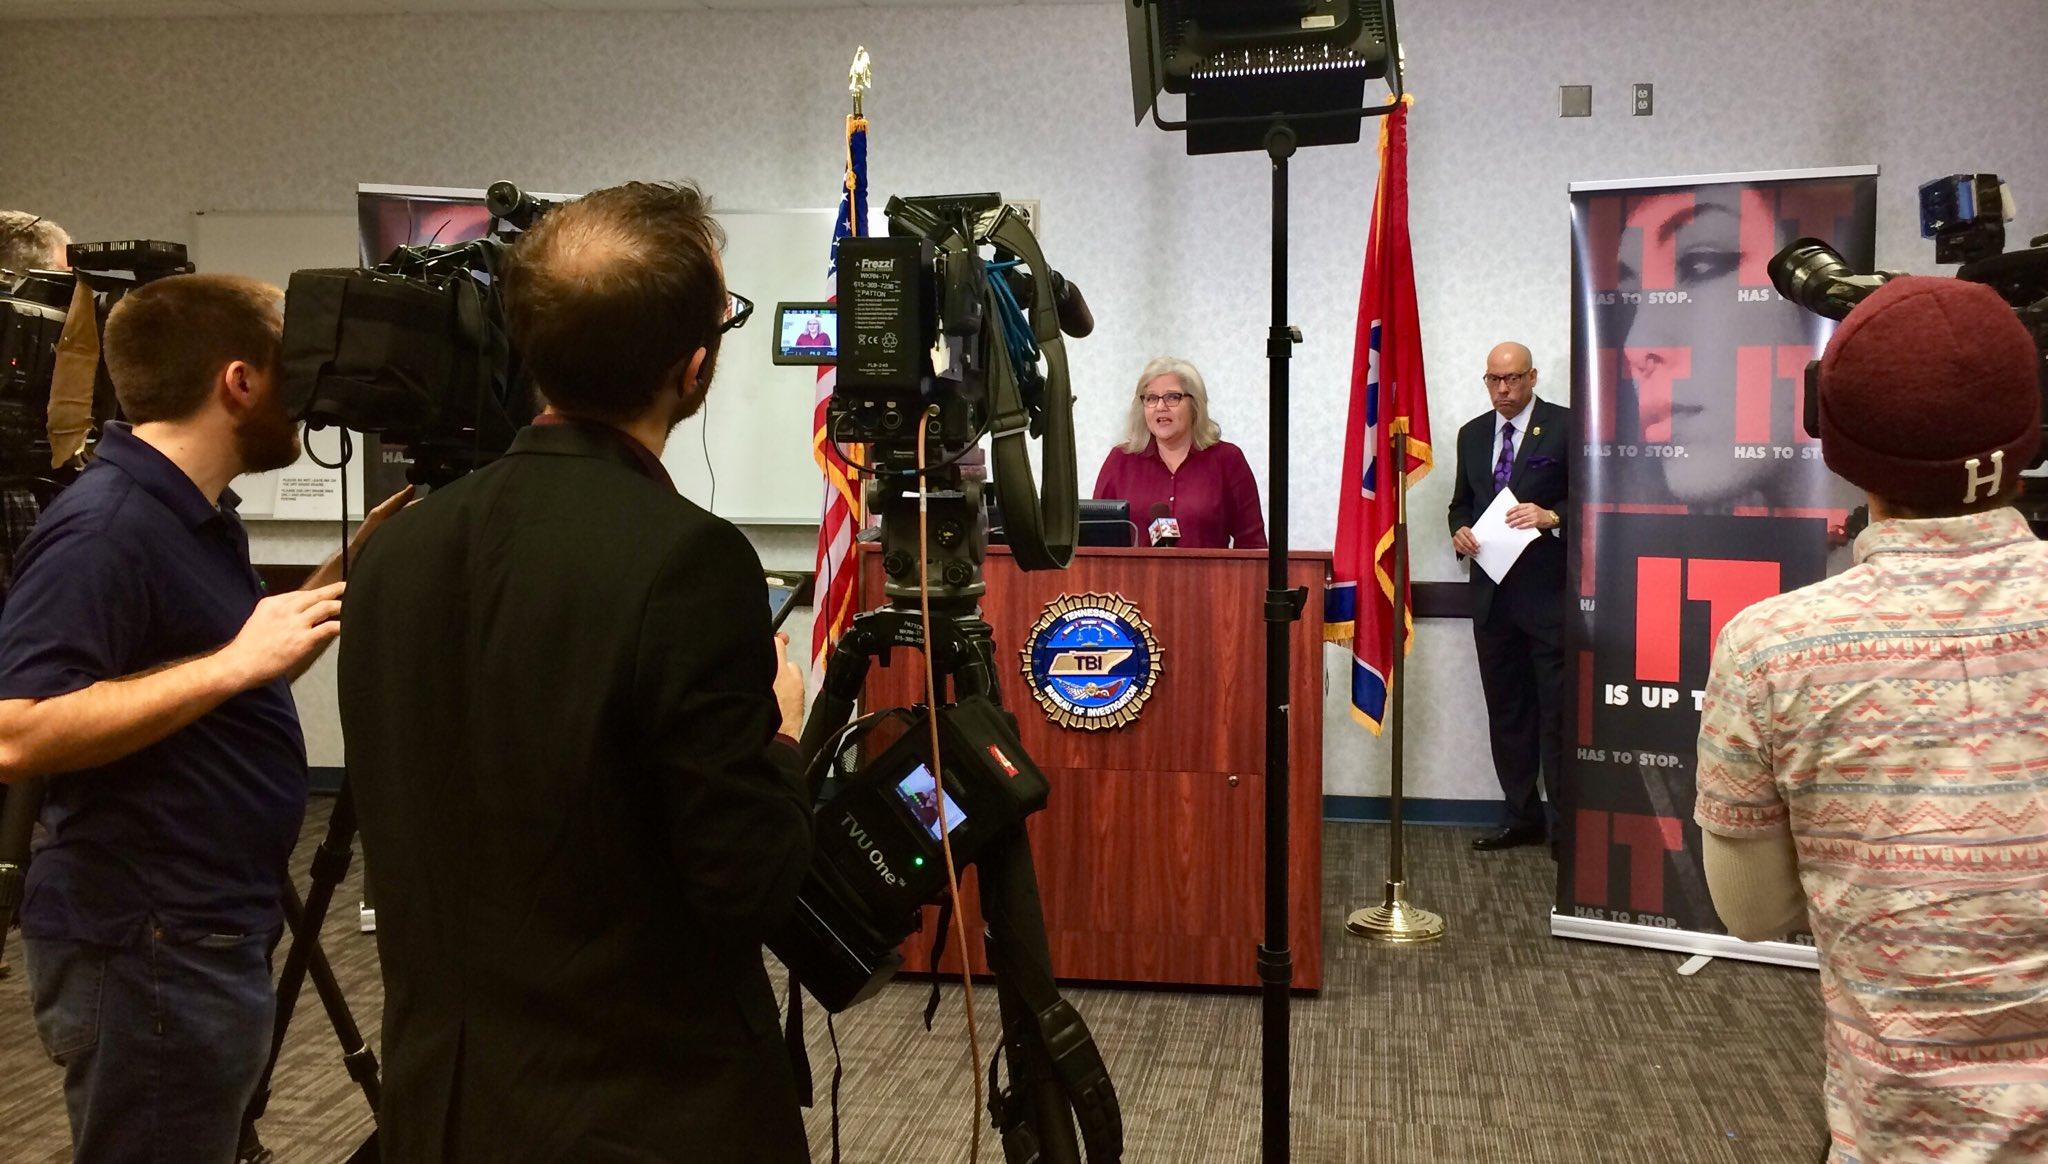 Tennessee Specify Law On Hookup A Minor